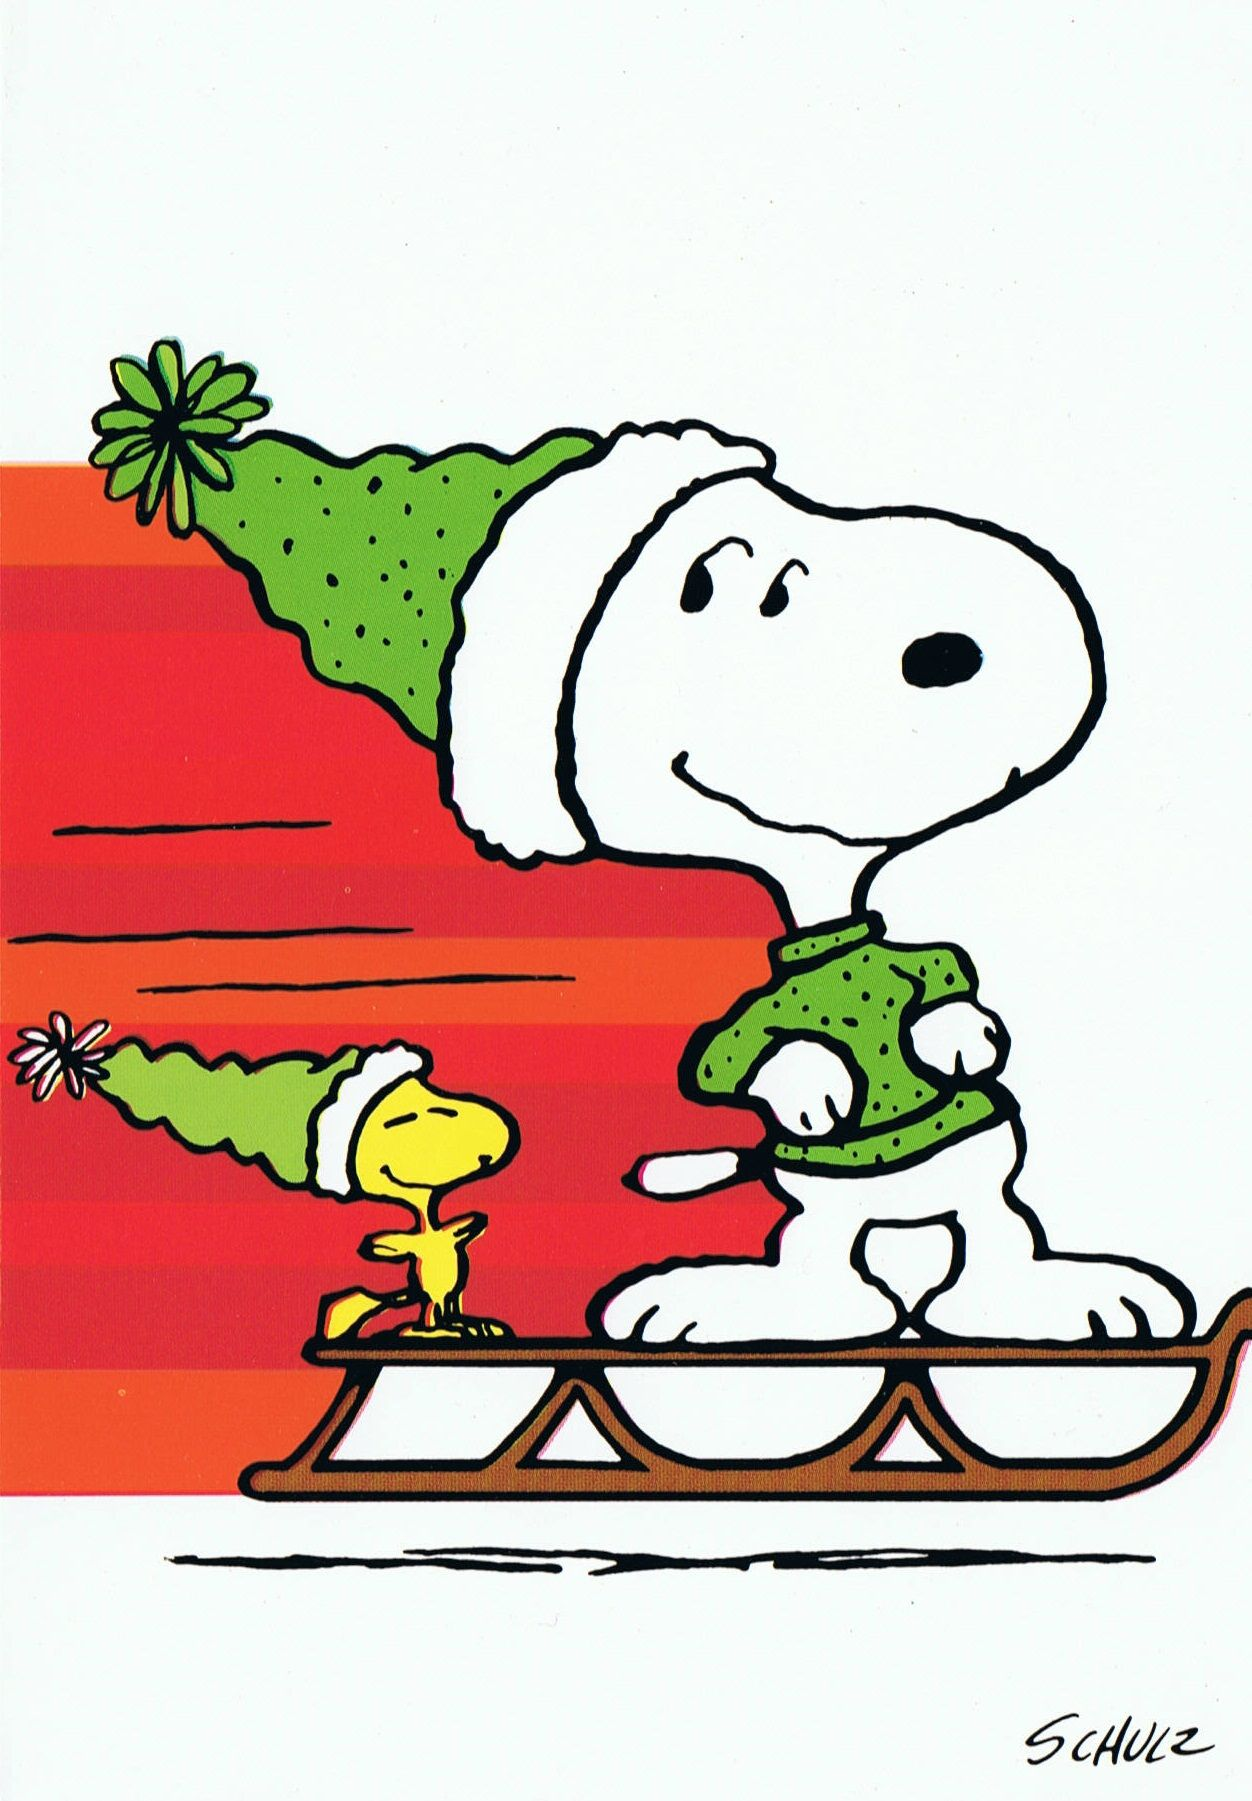 Winter snoopy snoopy pinterest bilder - Charlie brown bilder ...